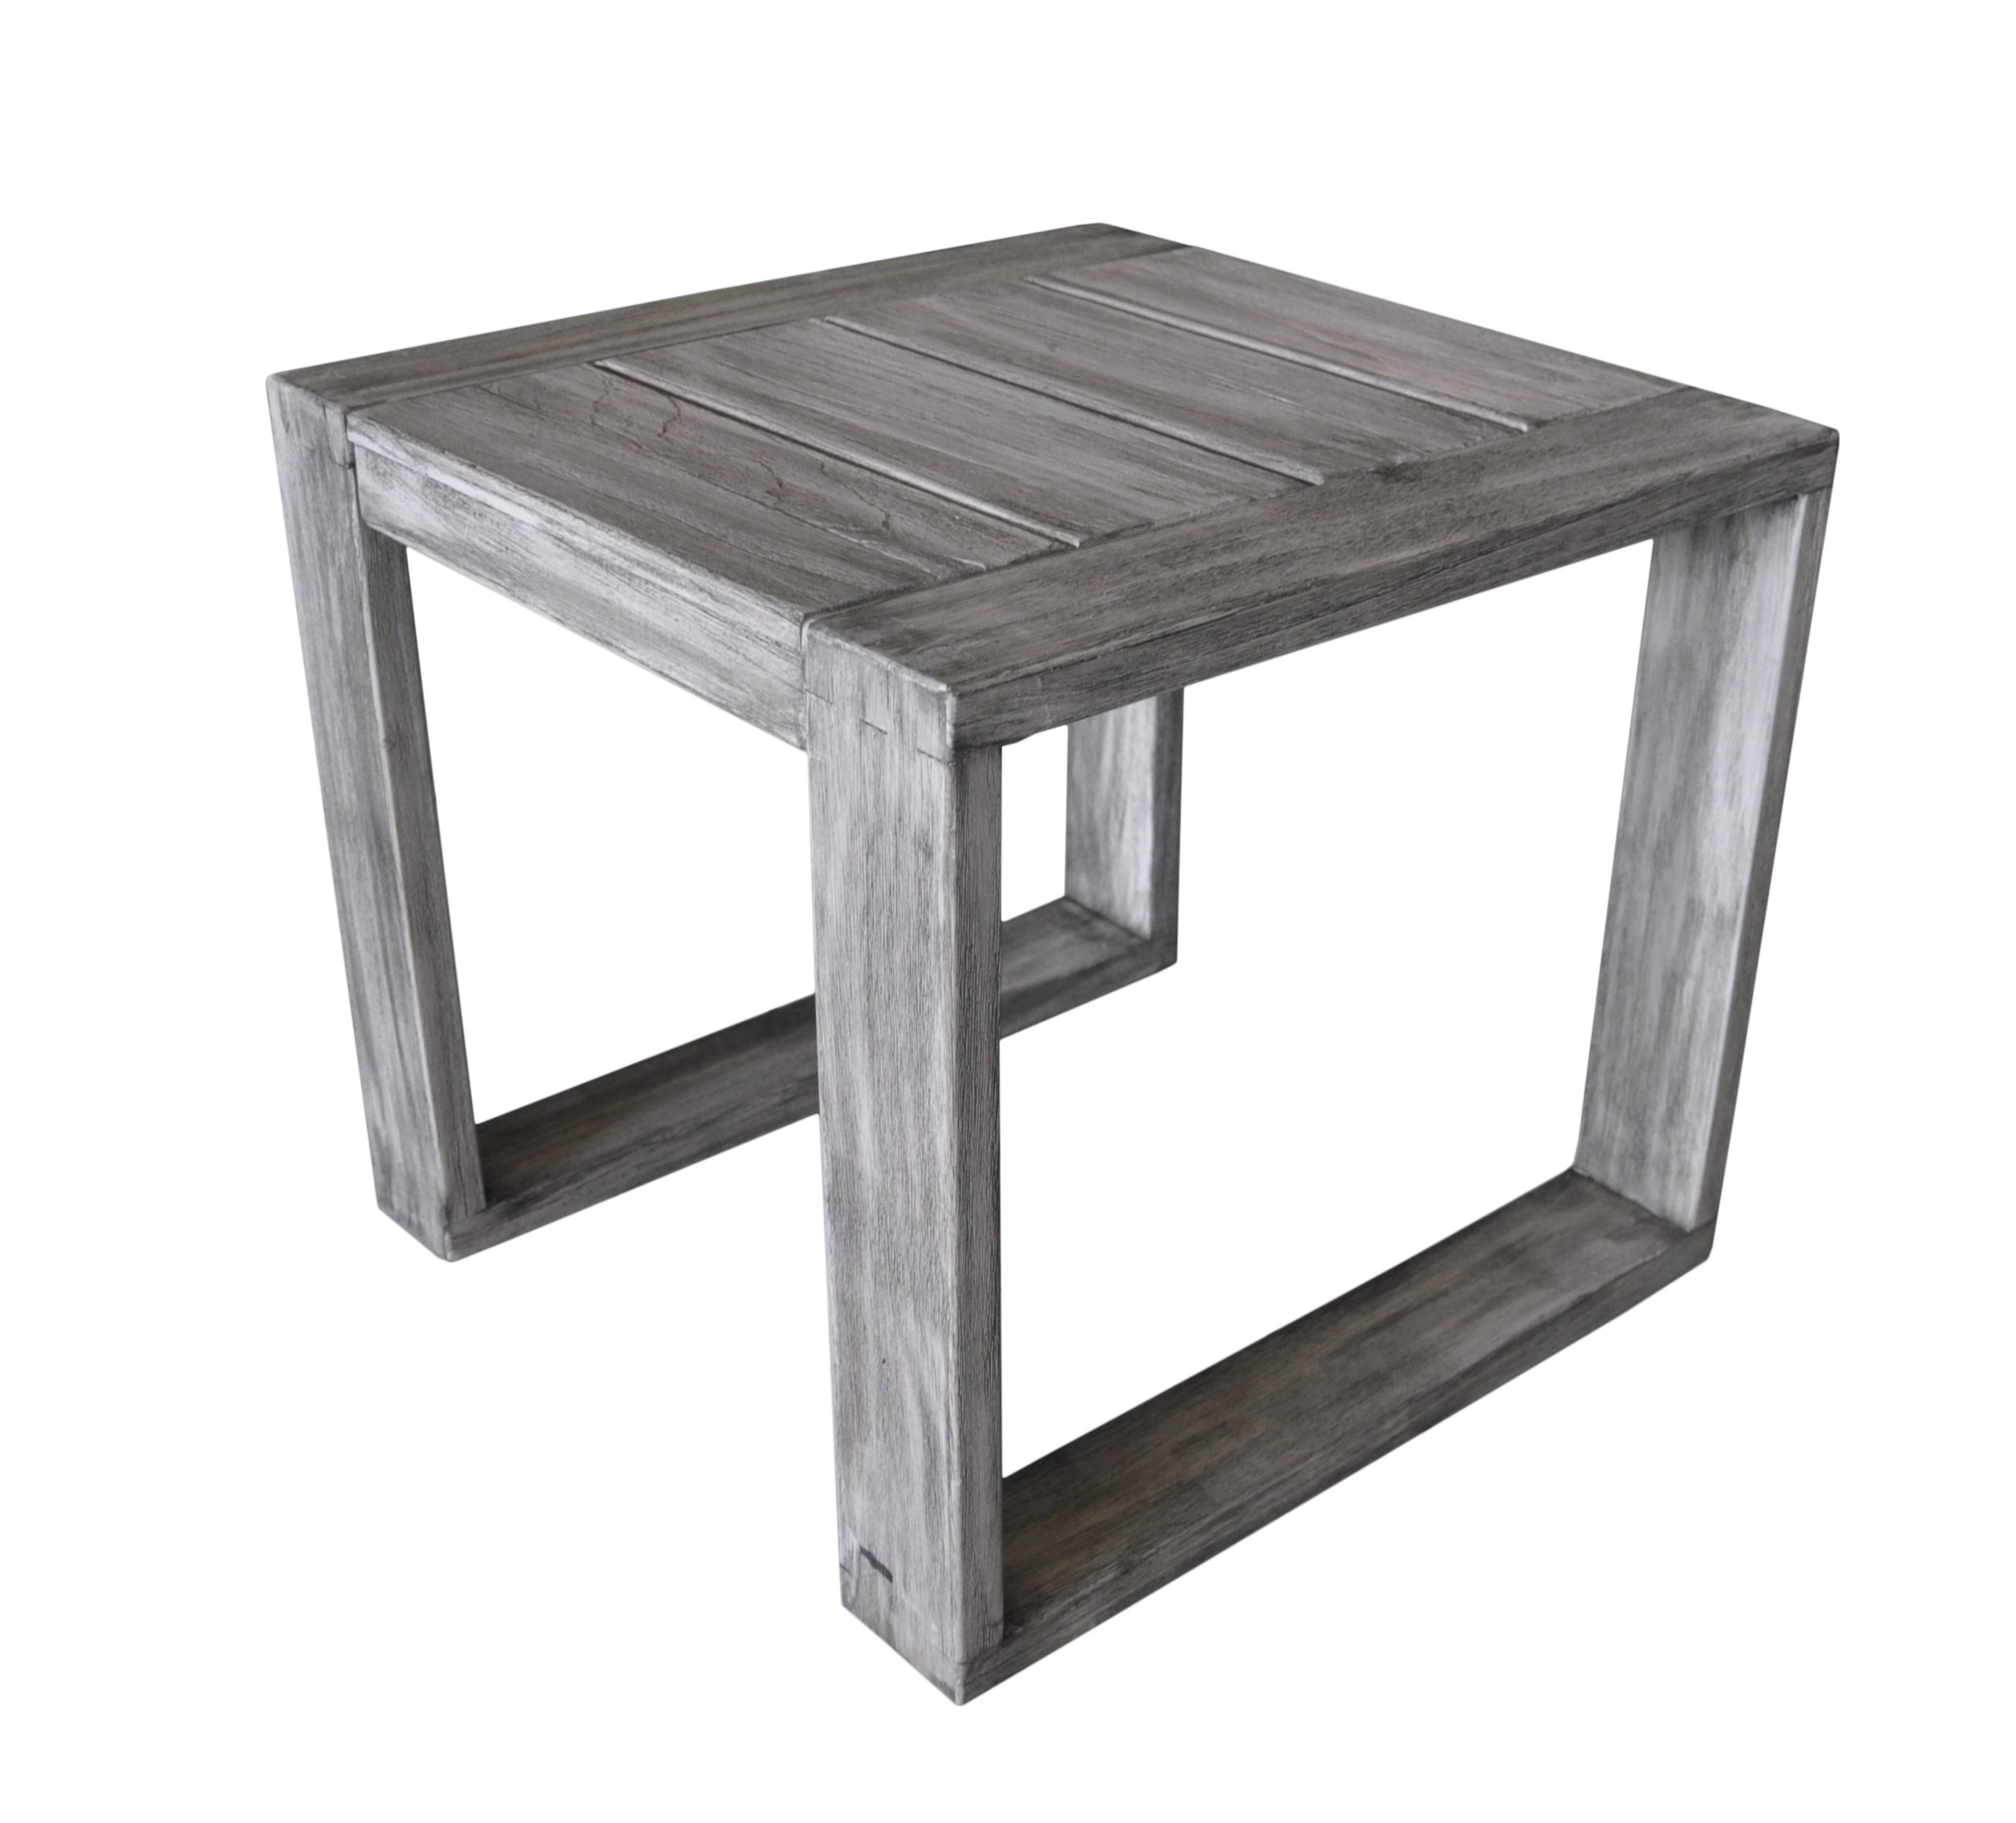 Courtyard Casual Driftwood Gray Teak Modern North Shore Outdoor Side Table - Great for any outdoor setting: patio, covered patio, deck, fire pit, outdoor kitchen, Poolside, lanai, gazebo, etc Fade and UV resistant and safe in full sun exposure Driftwood gray stain applied for a more natural patina look - patio-tables, patio-furniture, patio - 81C98 6cDYL -